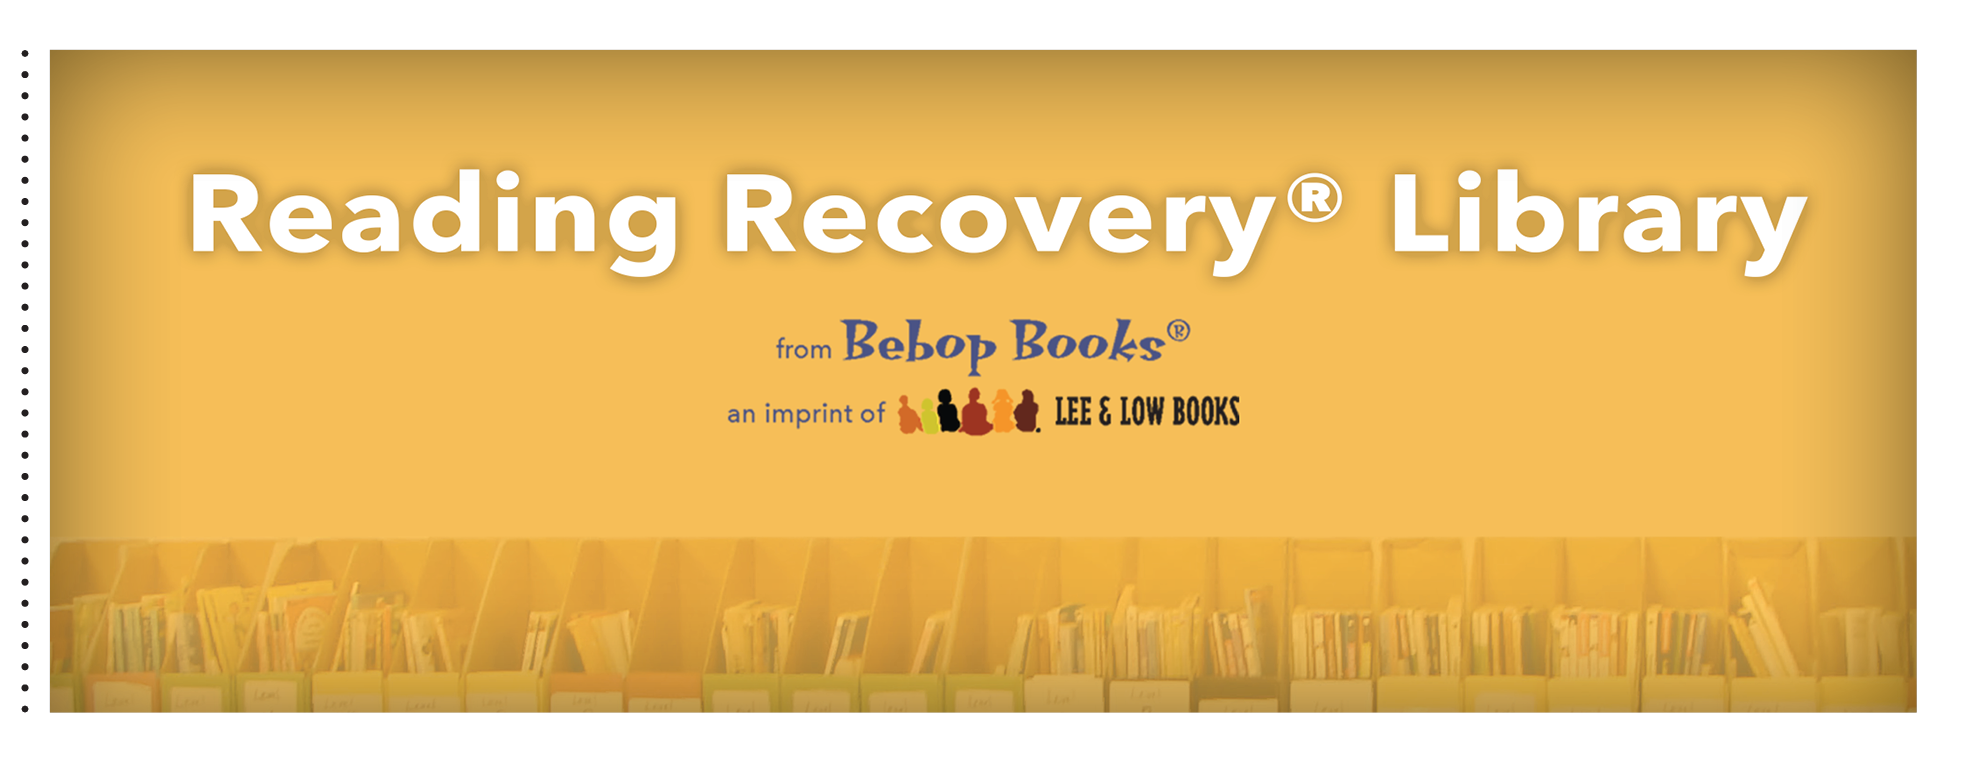 Educators_readingrecovery